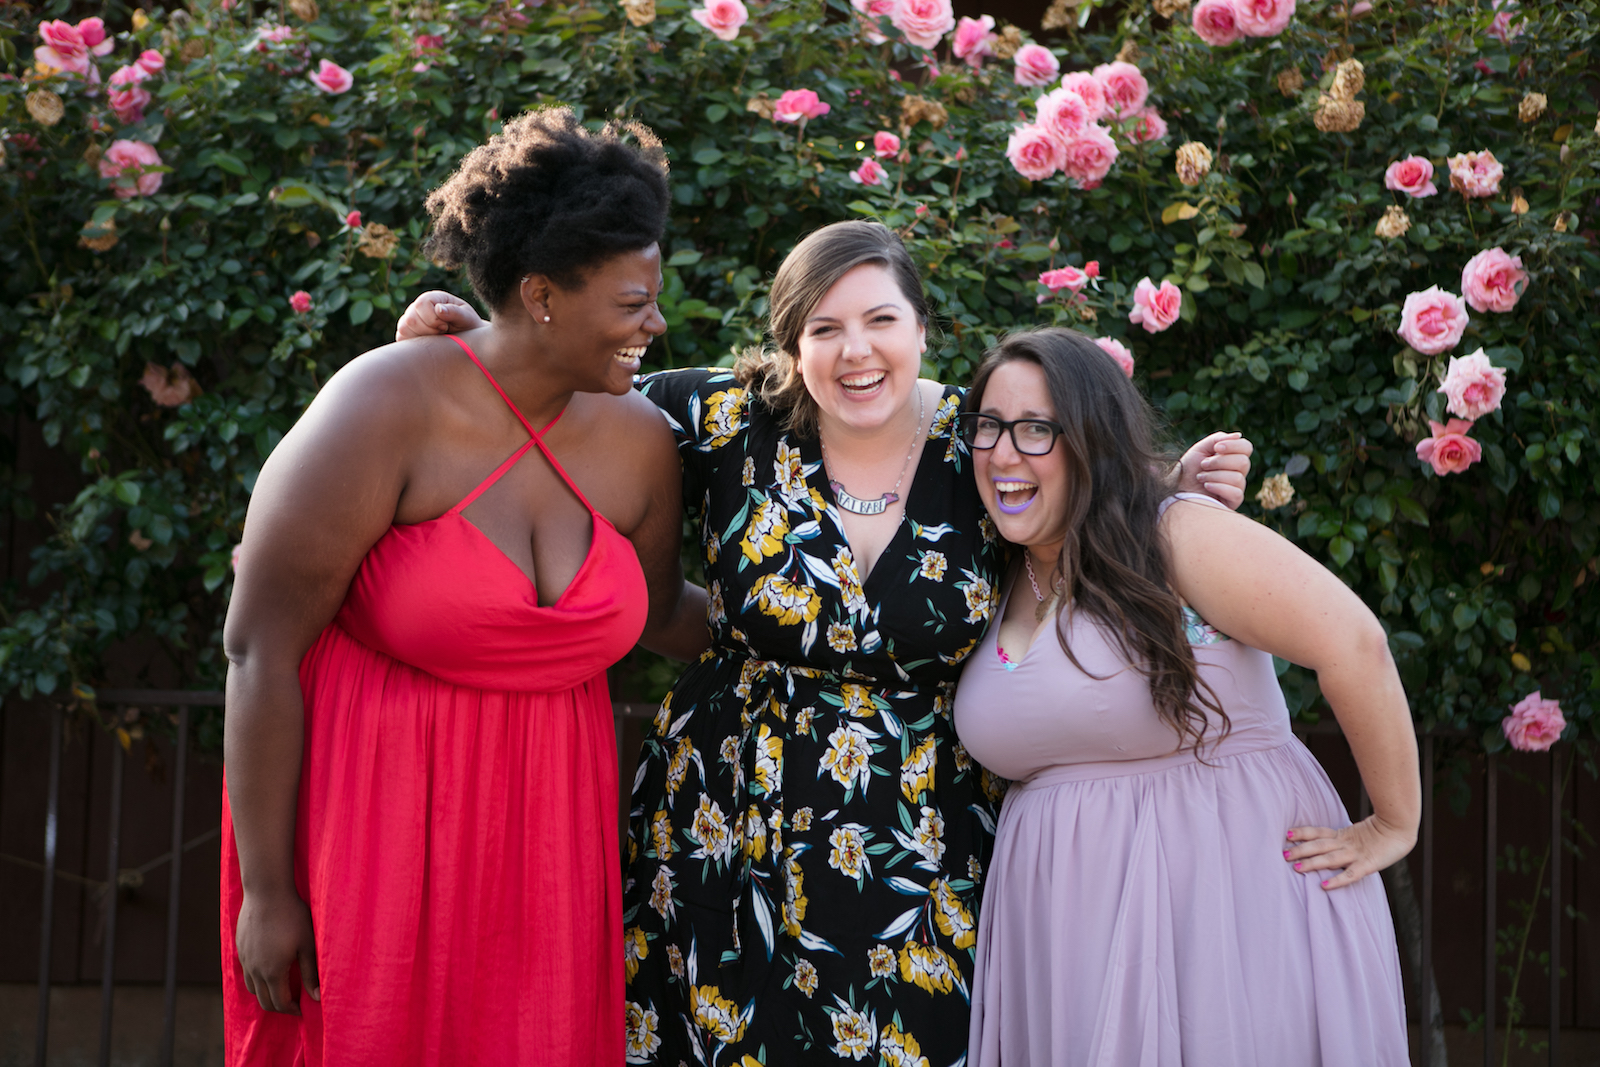 ef66050294c1e Lookbook  ModCloth and A-Camp s Queer Femme Summer Plus-Size Party ...